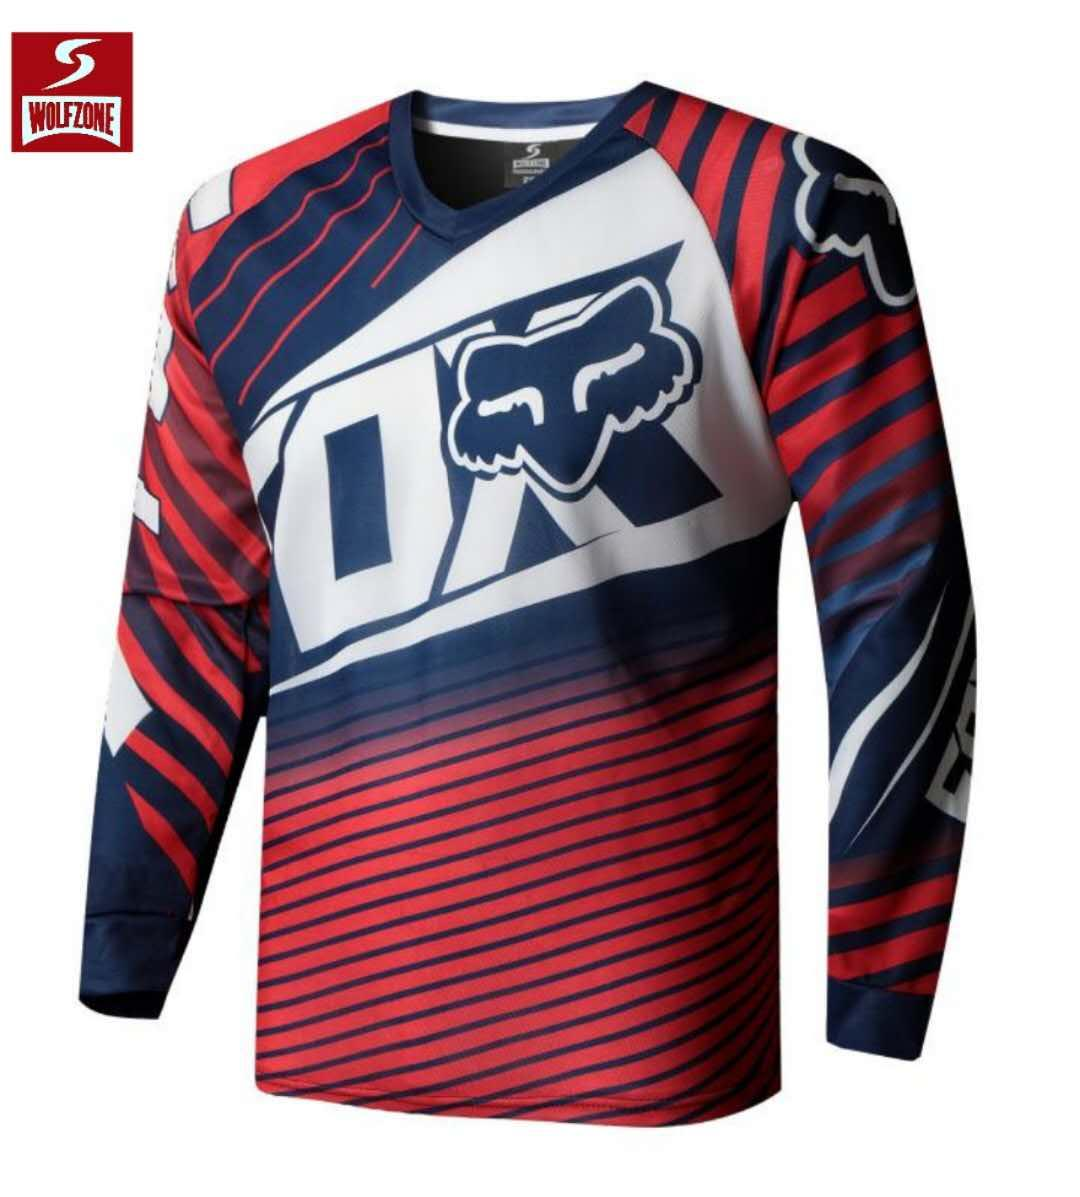 Wolf Zone Spandex Fox Longsleeve Men s Sportswear Quick DryFortress Cycling  Mountain Bike Motocross Motorcycle MTB 43bffa654